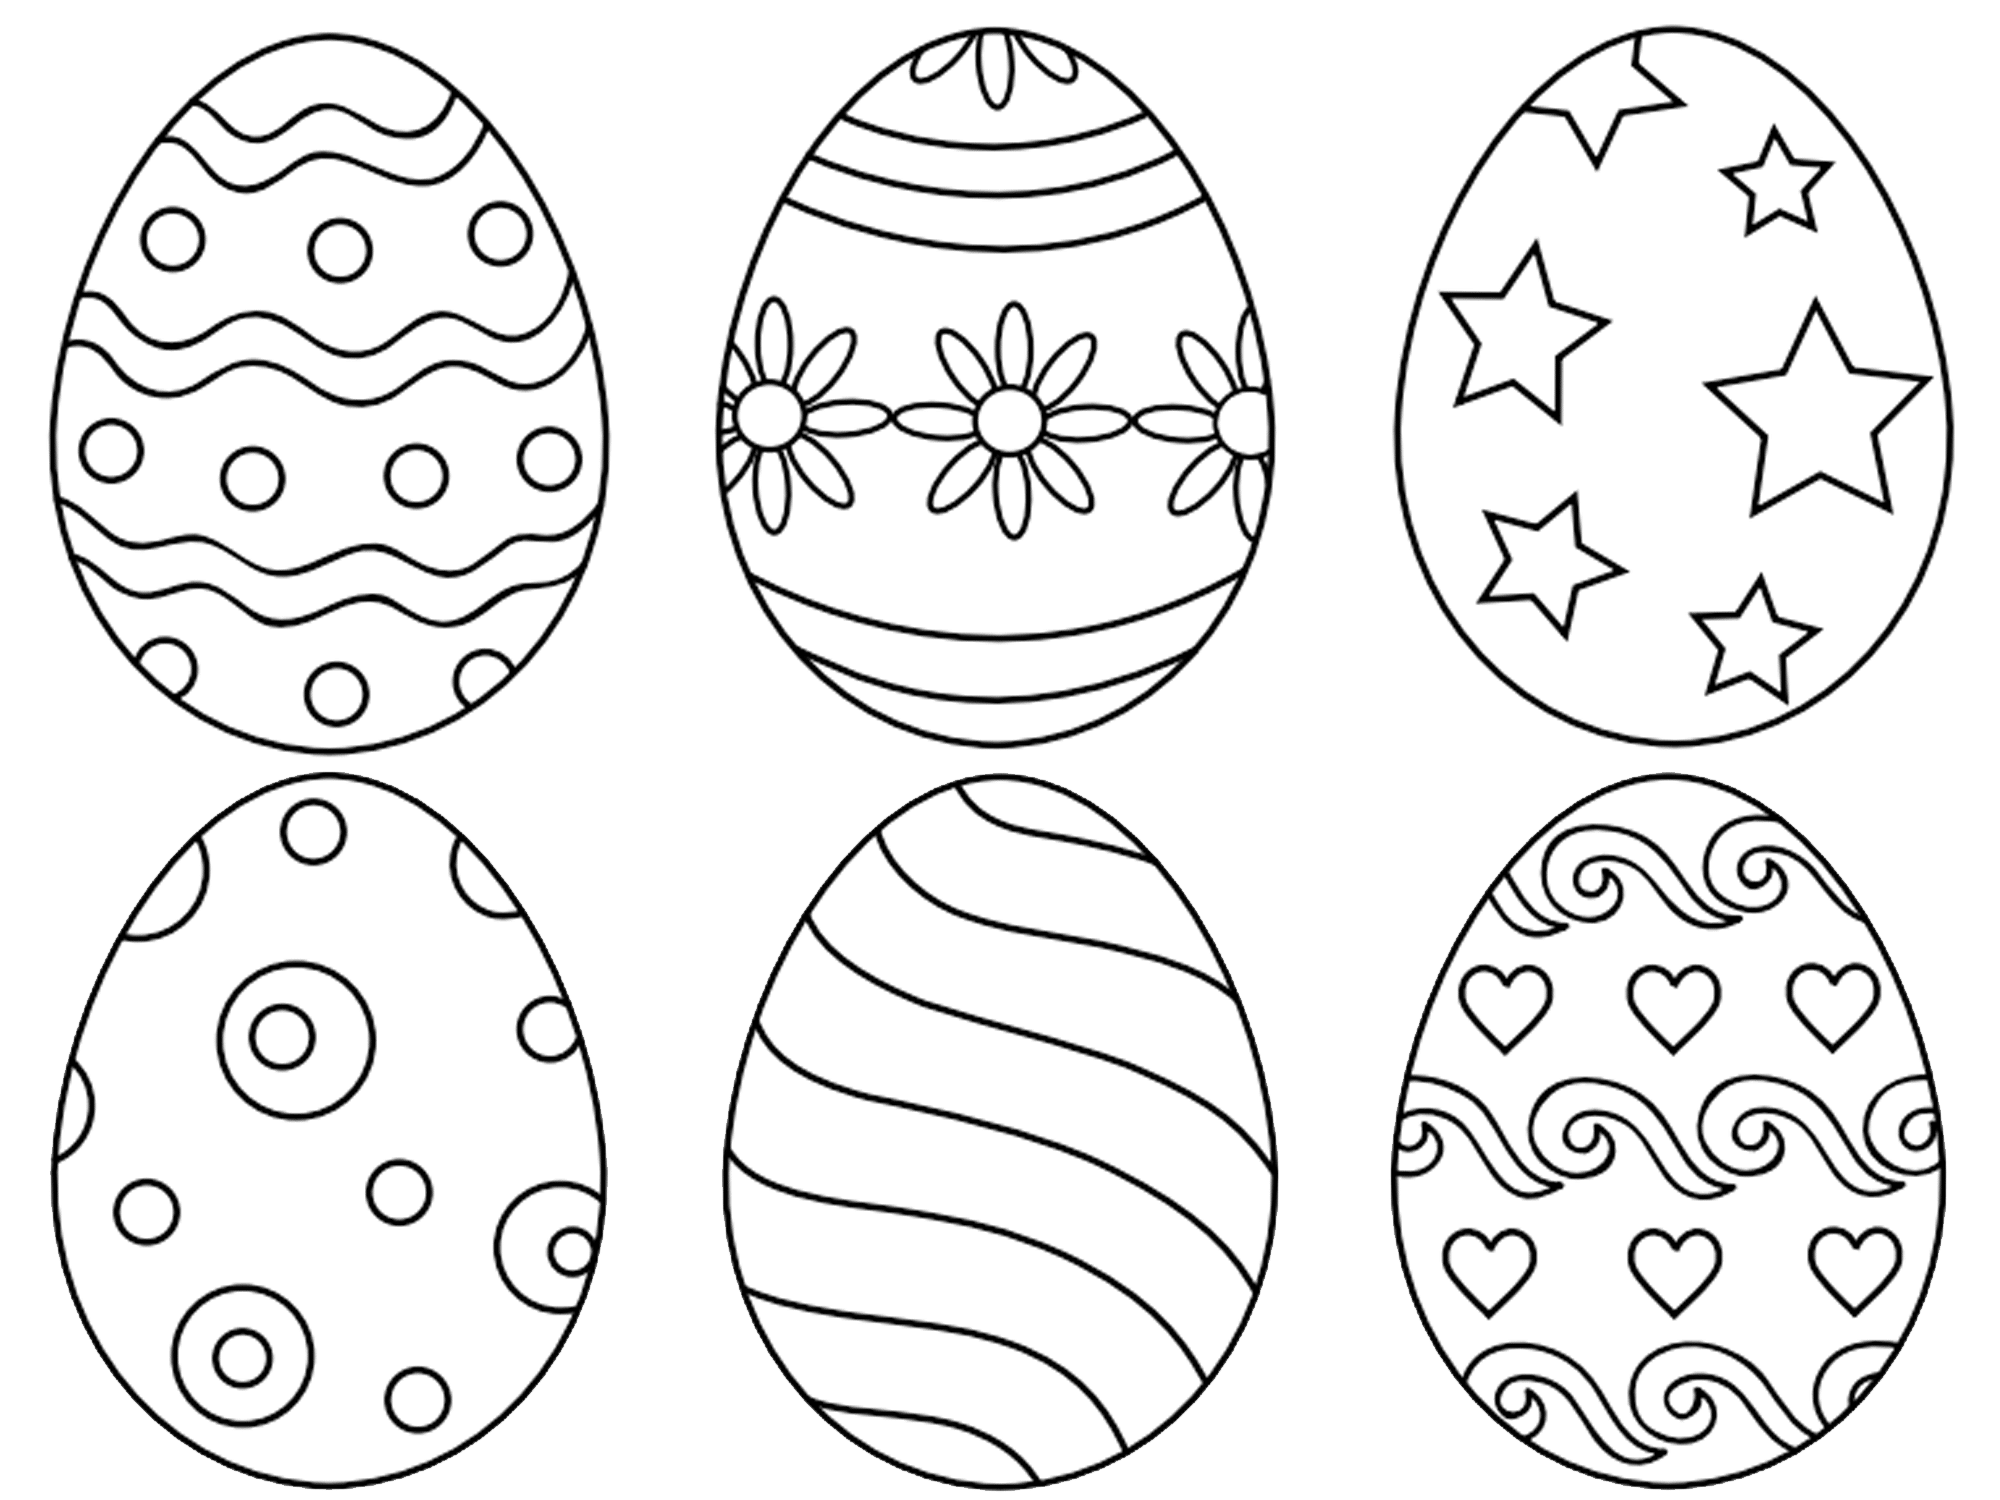 2000x1500 Easter Egg Coloring Pages Easy For Good Draw Photo Dringrames